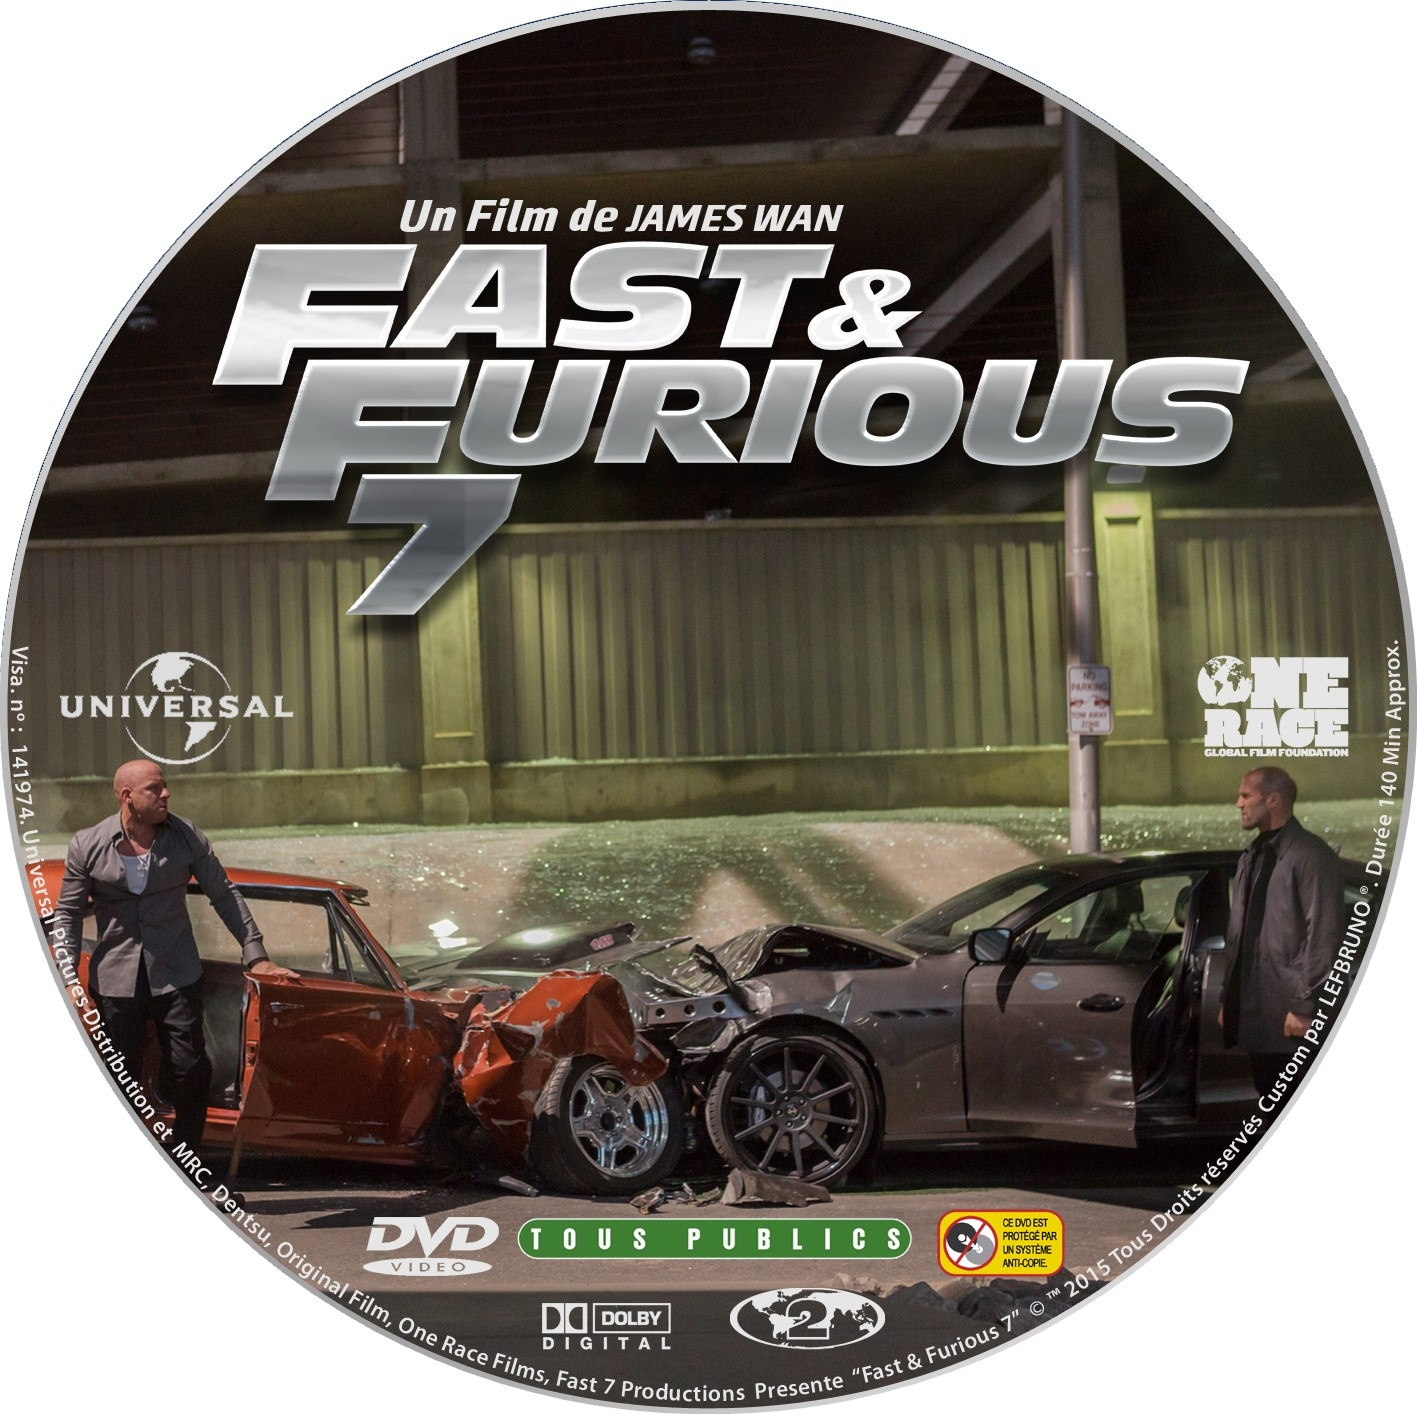 covers box sk furious 7 2015 high quality dvd blueray movie. Black Bedroom Furniture Sets. Home Design Ideas